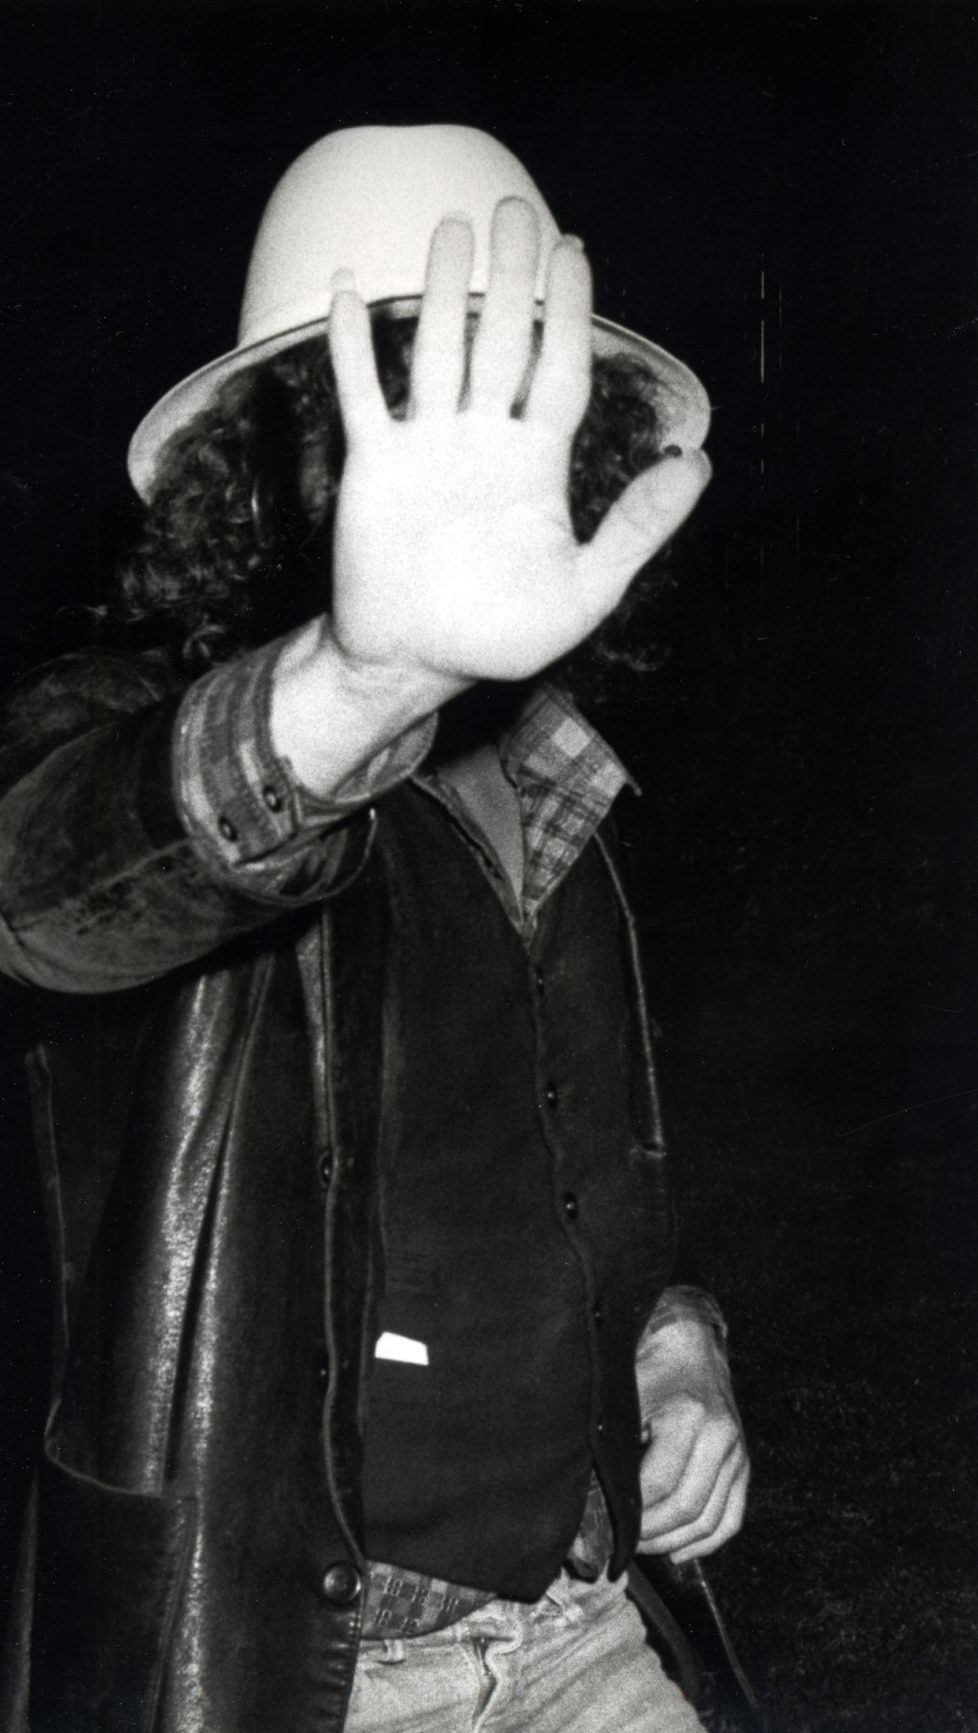 Bob Dylan during Bob Dylan Attends a Ronee Blakely Concert at The Roxy Club in Los Angeles - March 11, 1977 at The Roxy Club in Los Angeles, California, United States. (Photo by Ron Galella/WireImage)